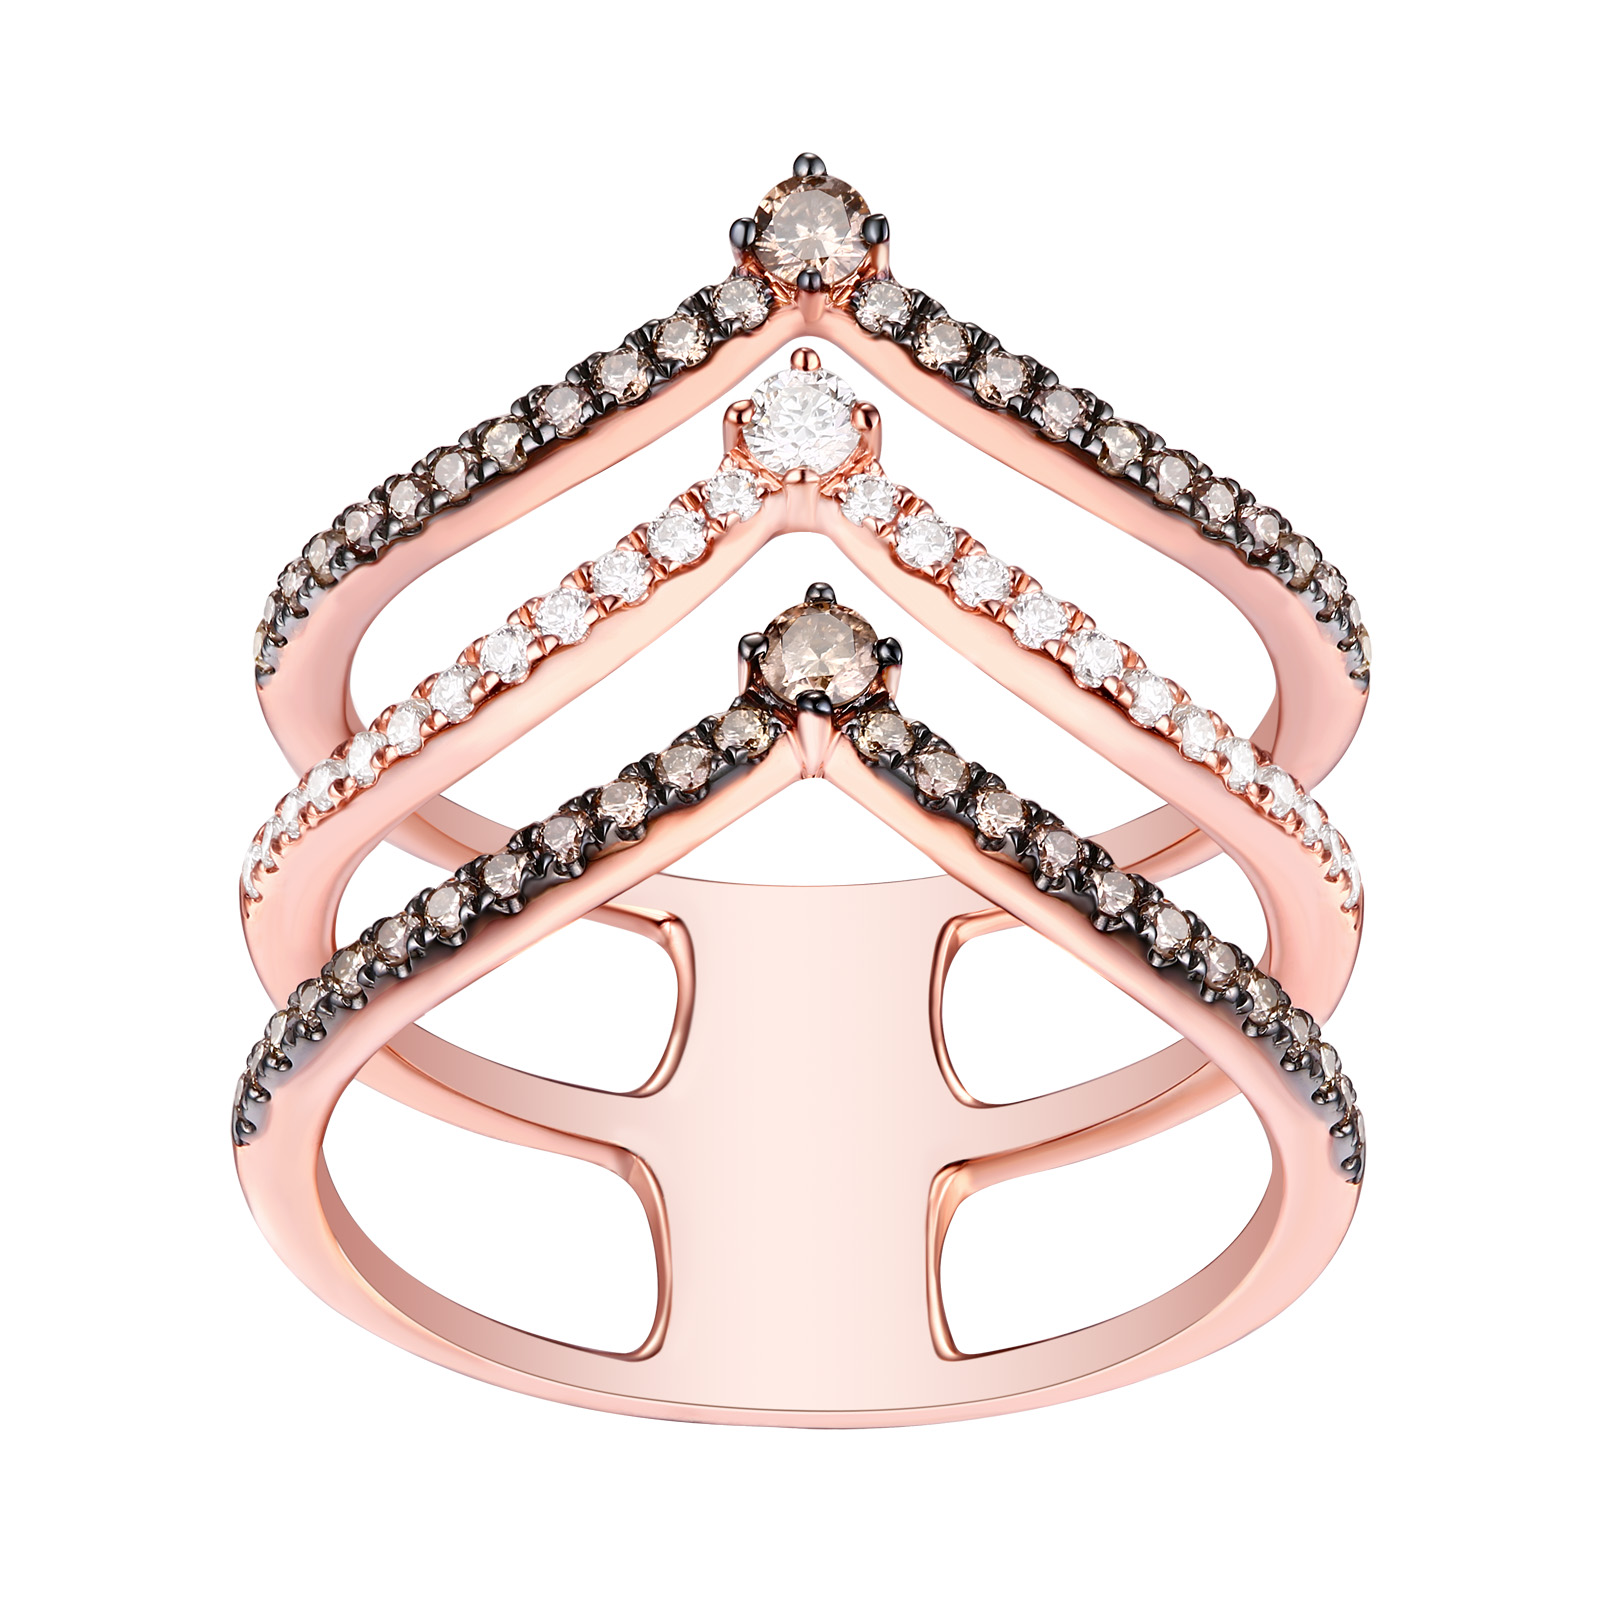 R25901WBR- 14K Rose Gold Diamond Ring, 0.60 TCW